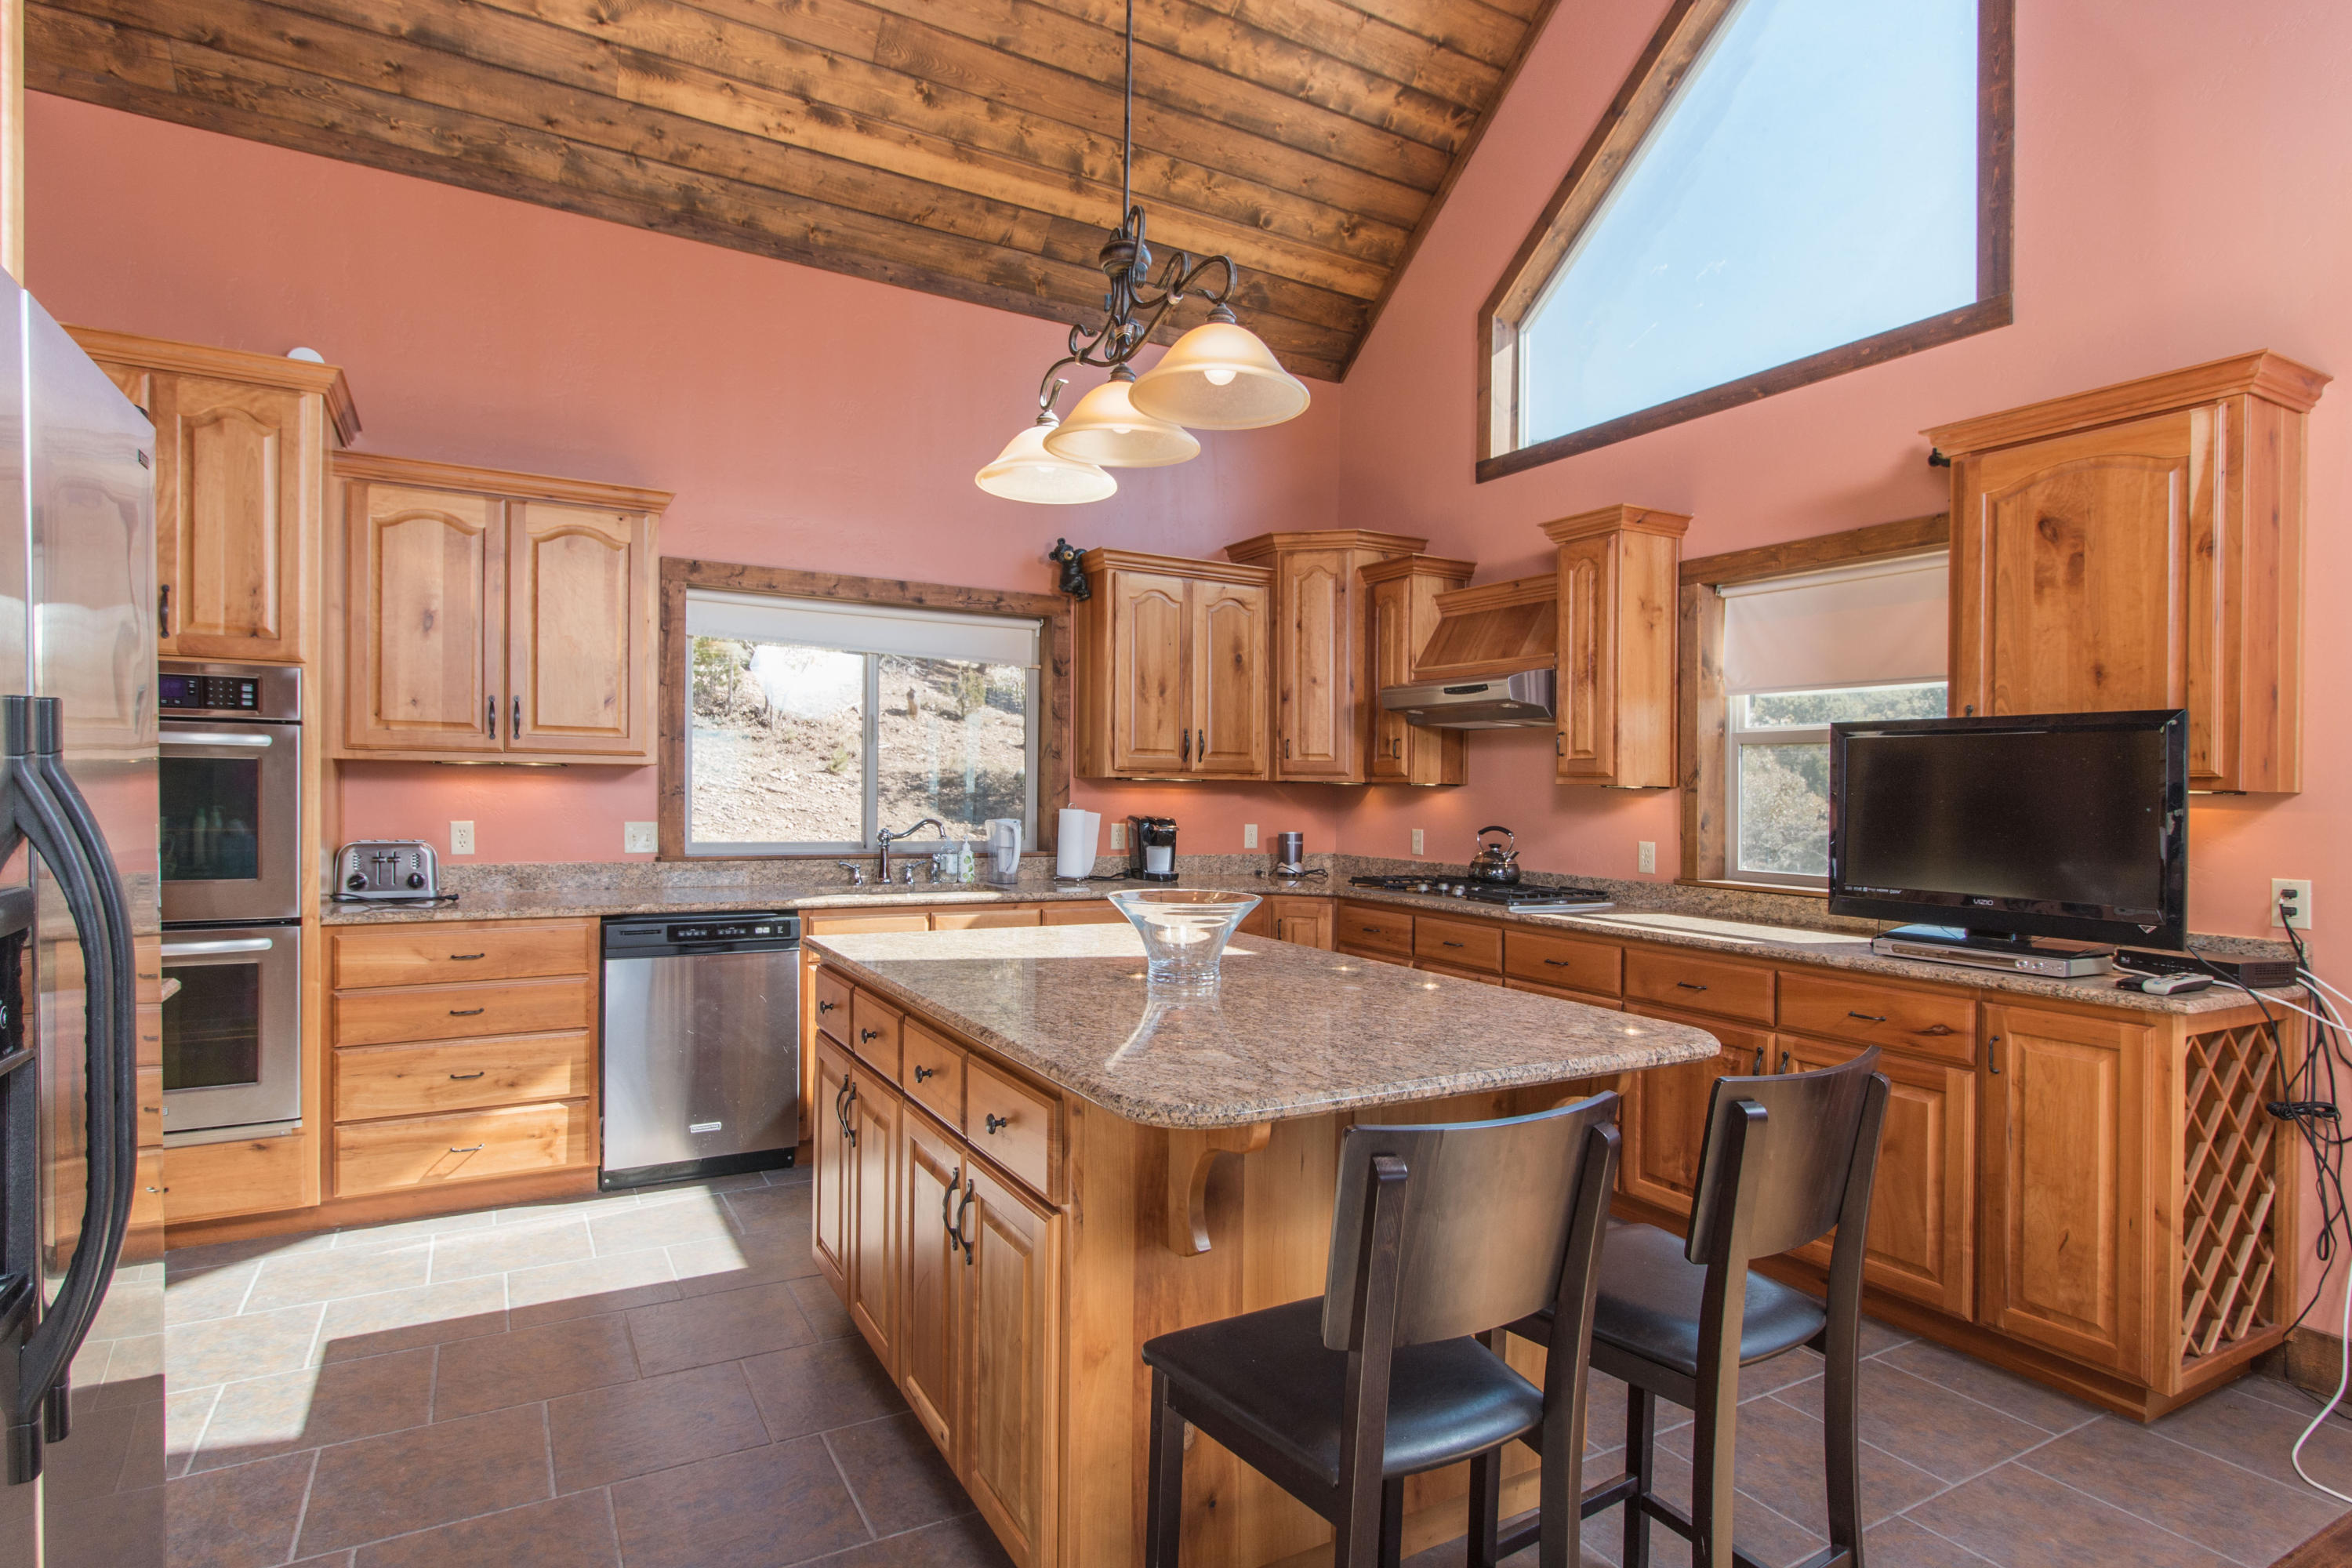 84262 2101 High Cedar View  Cedar City UT